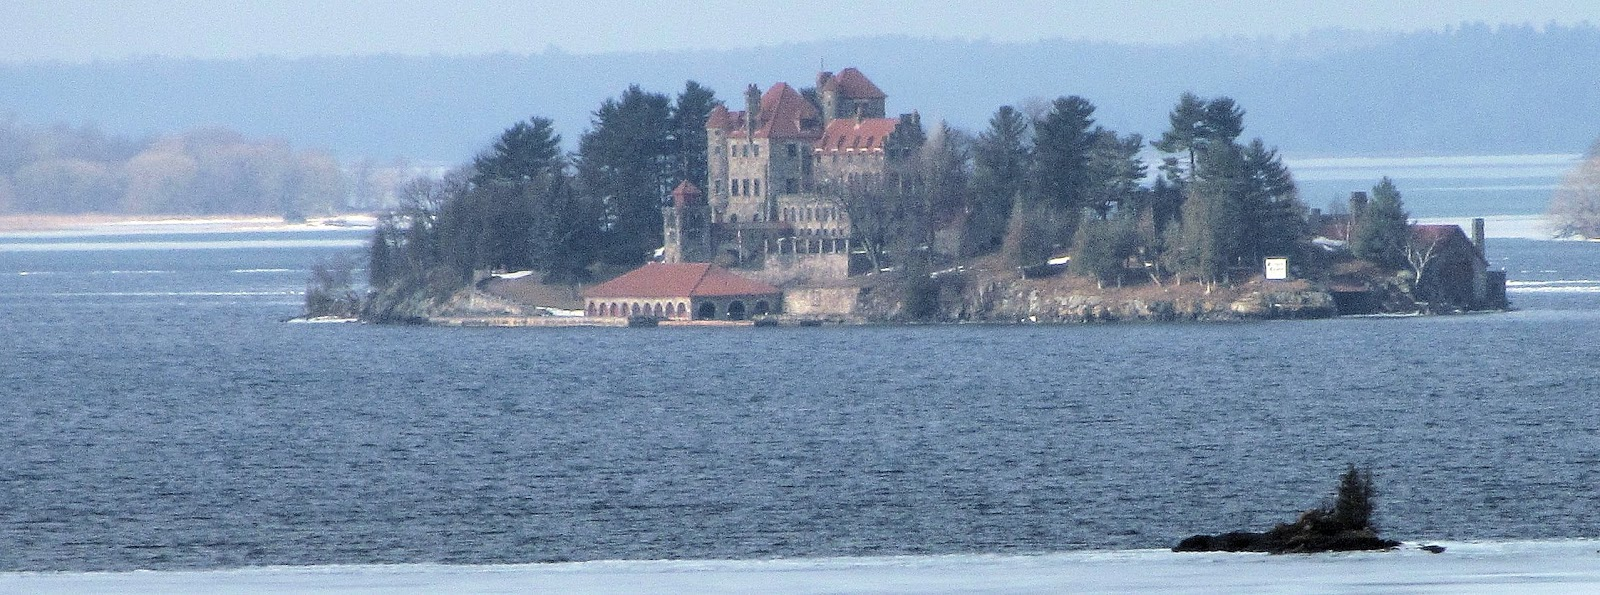 Singer Castle in March 2013